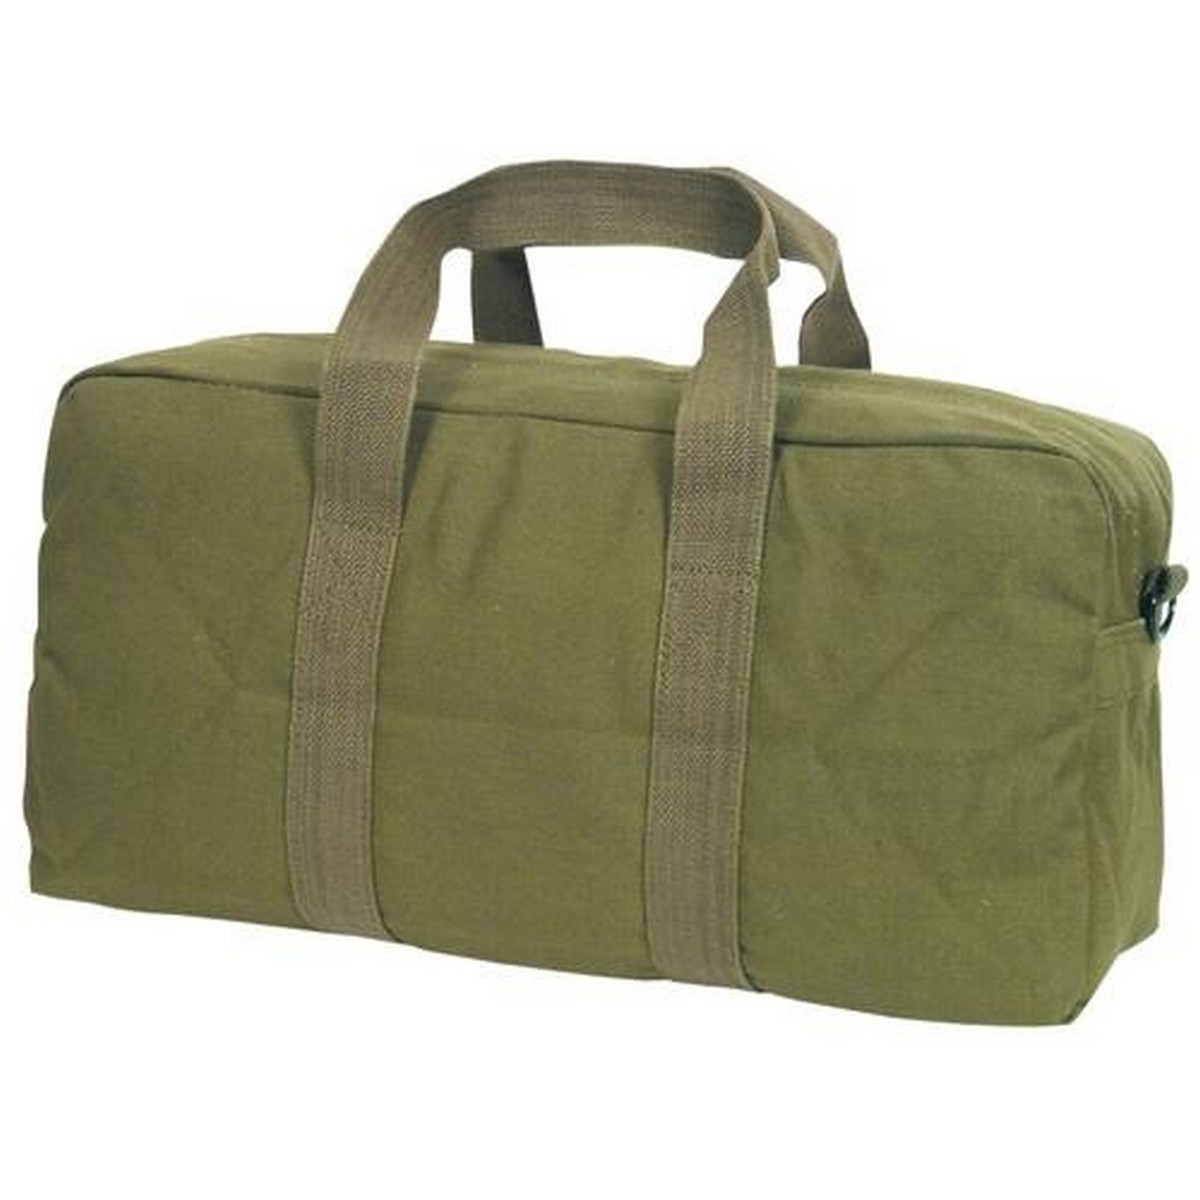 Tarpal Canvas Made Tool Bag 16 inch with side pocket zipper Green High Quality